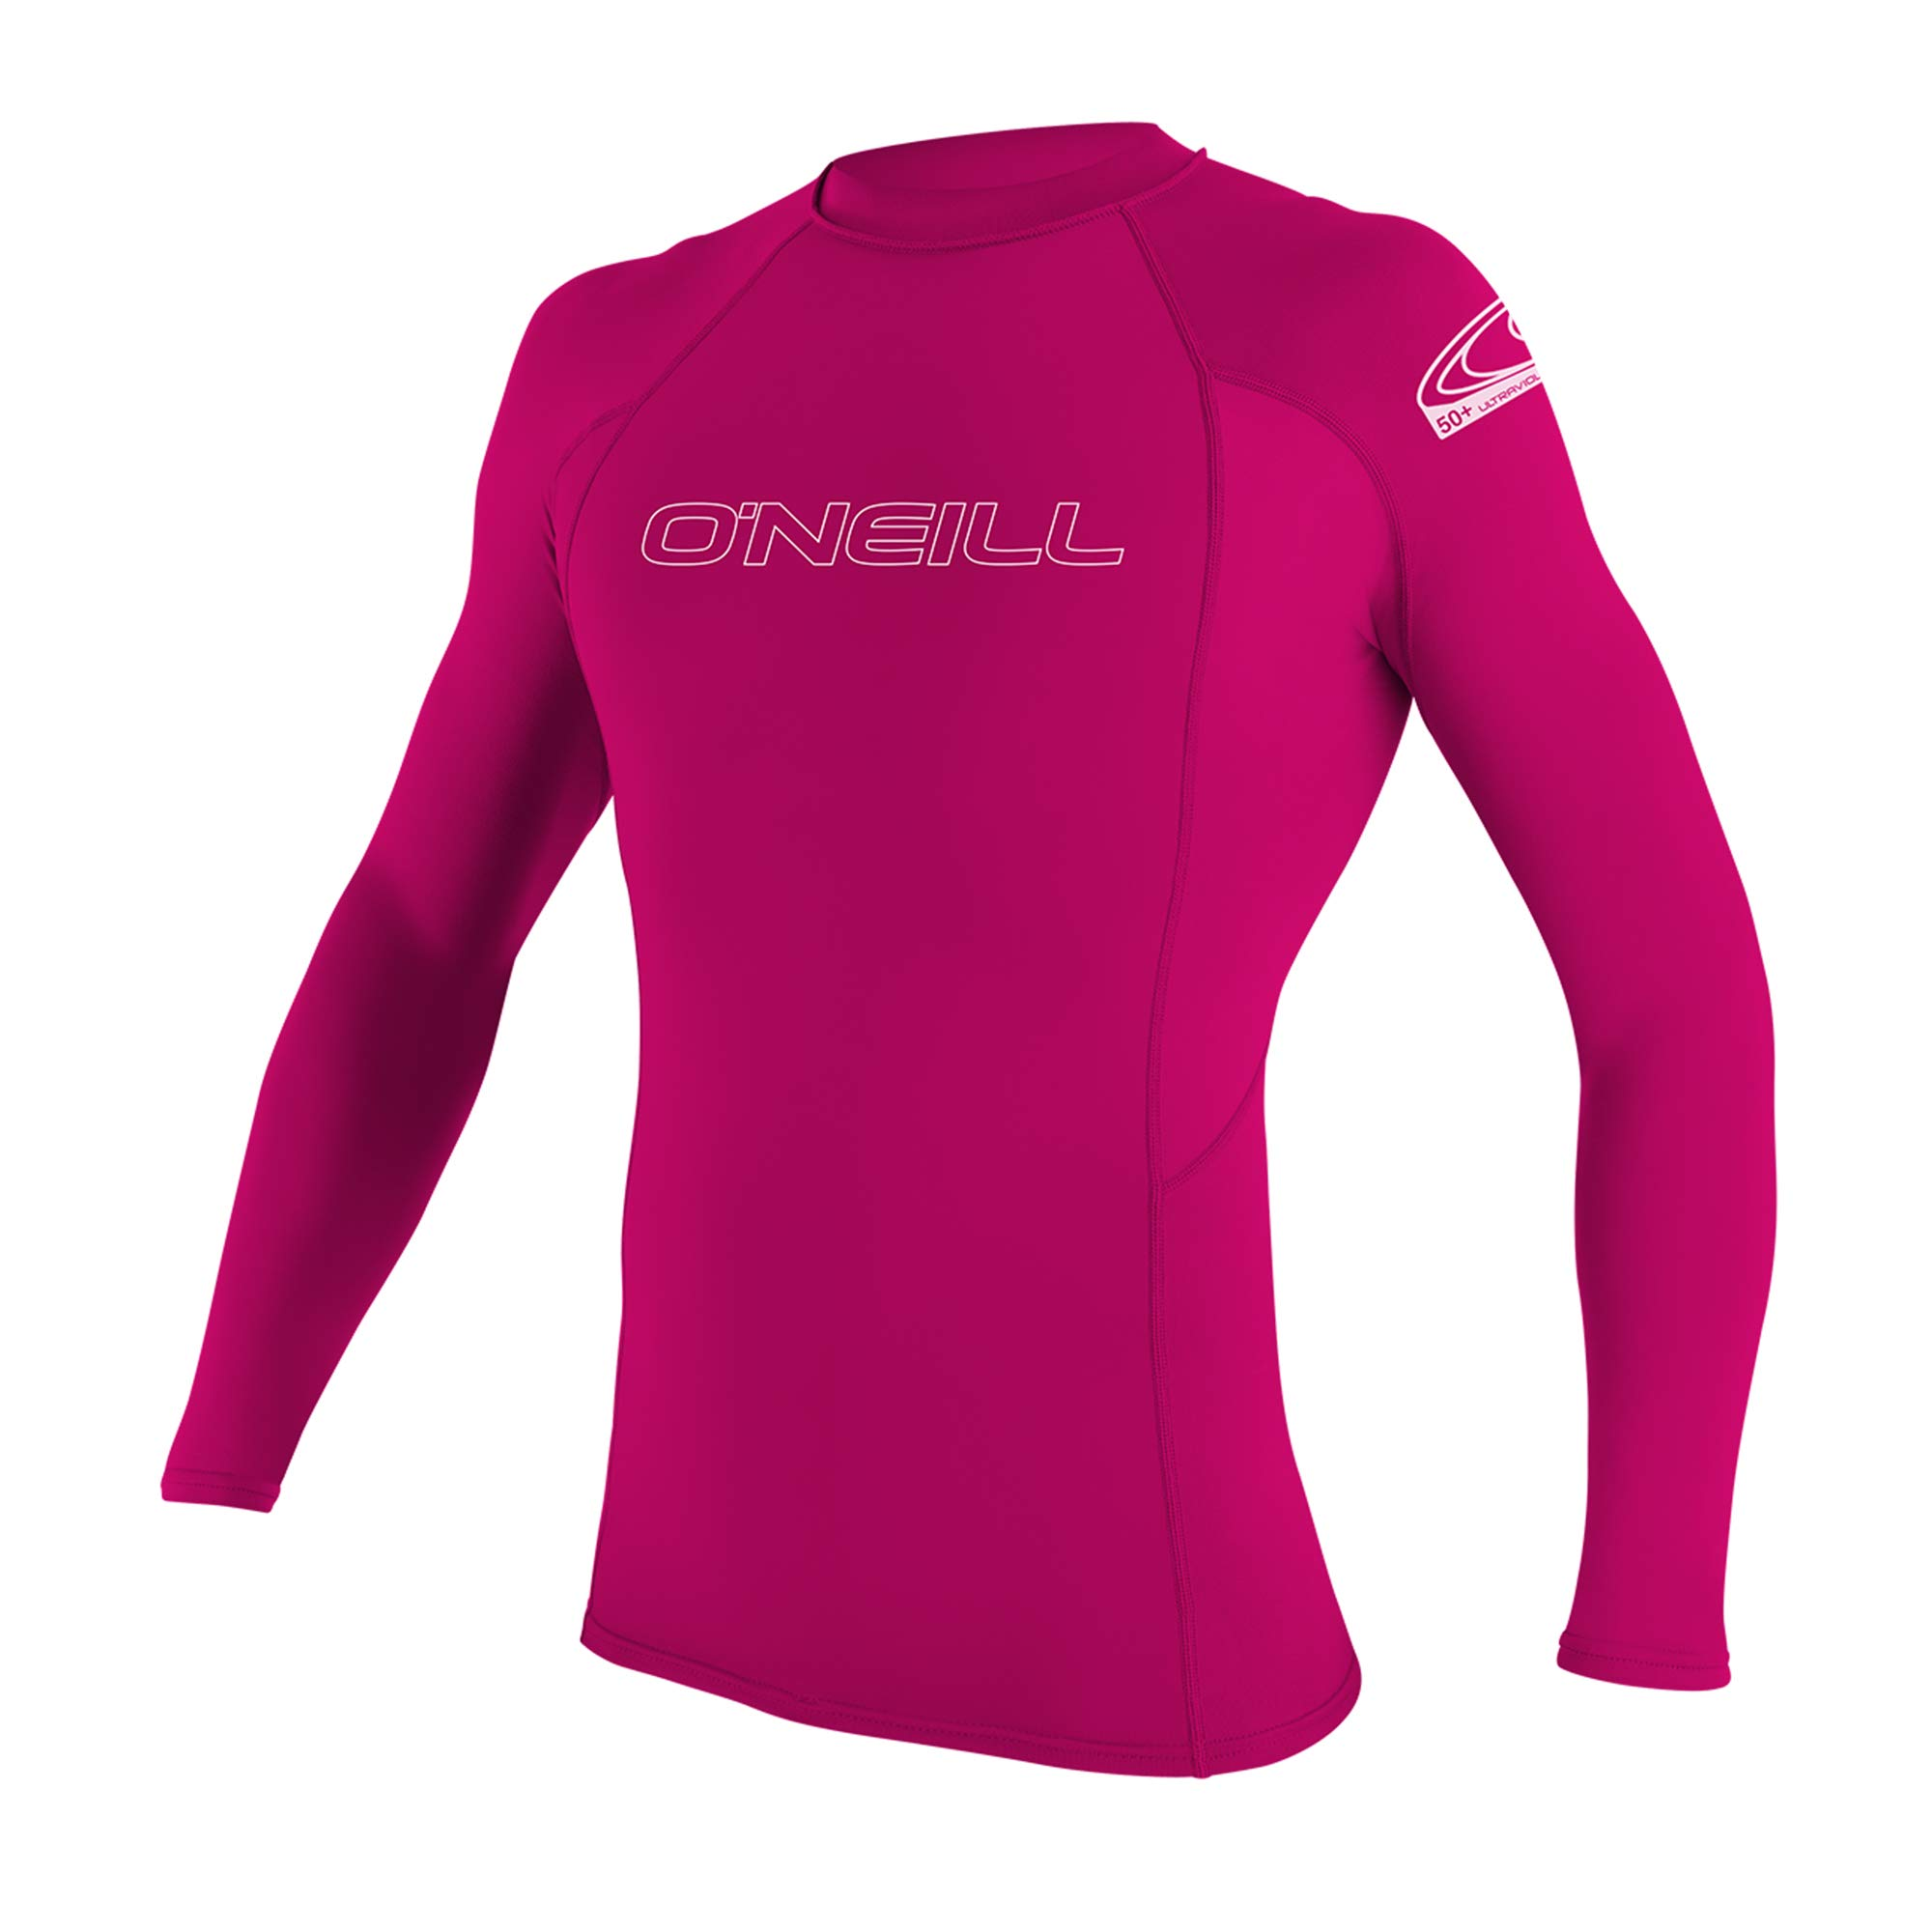 O'Neill Youth Basic Skins UPF 50+ Long Sleeve Rash Guard, Watermelon, 8 by O'Neill Wetsuits